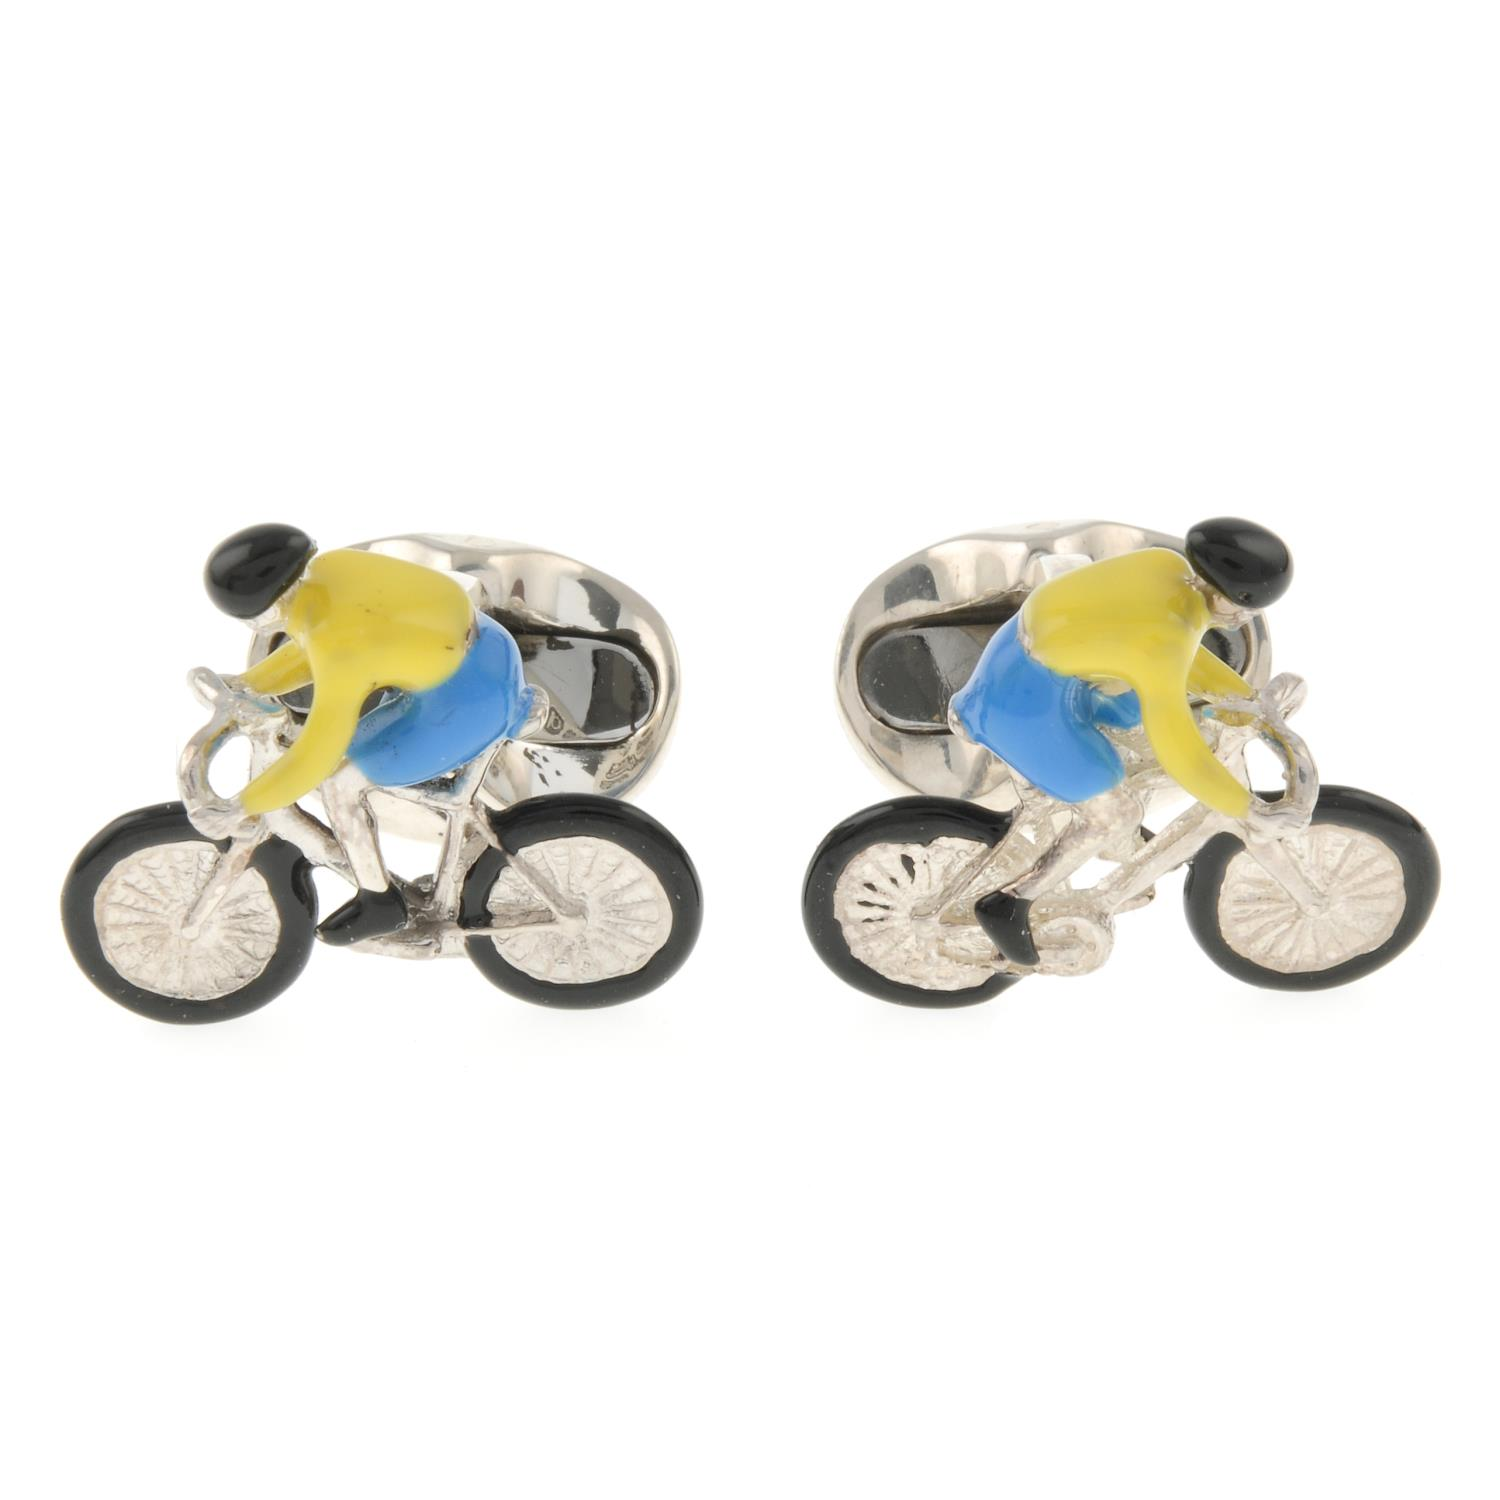 A pair of silver enamel bicycle cufflinks, by Deakin and Francis.Signed D&F.